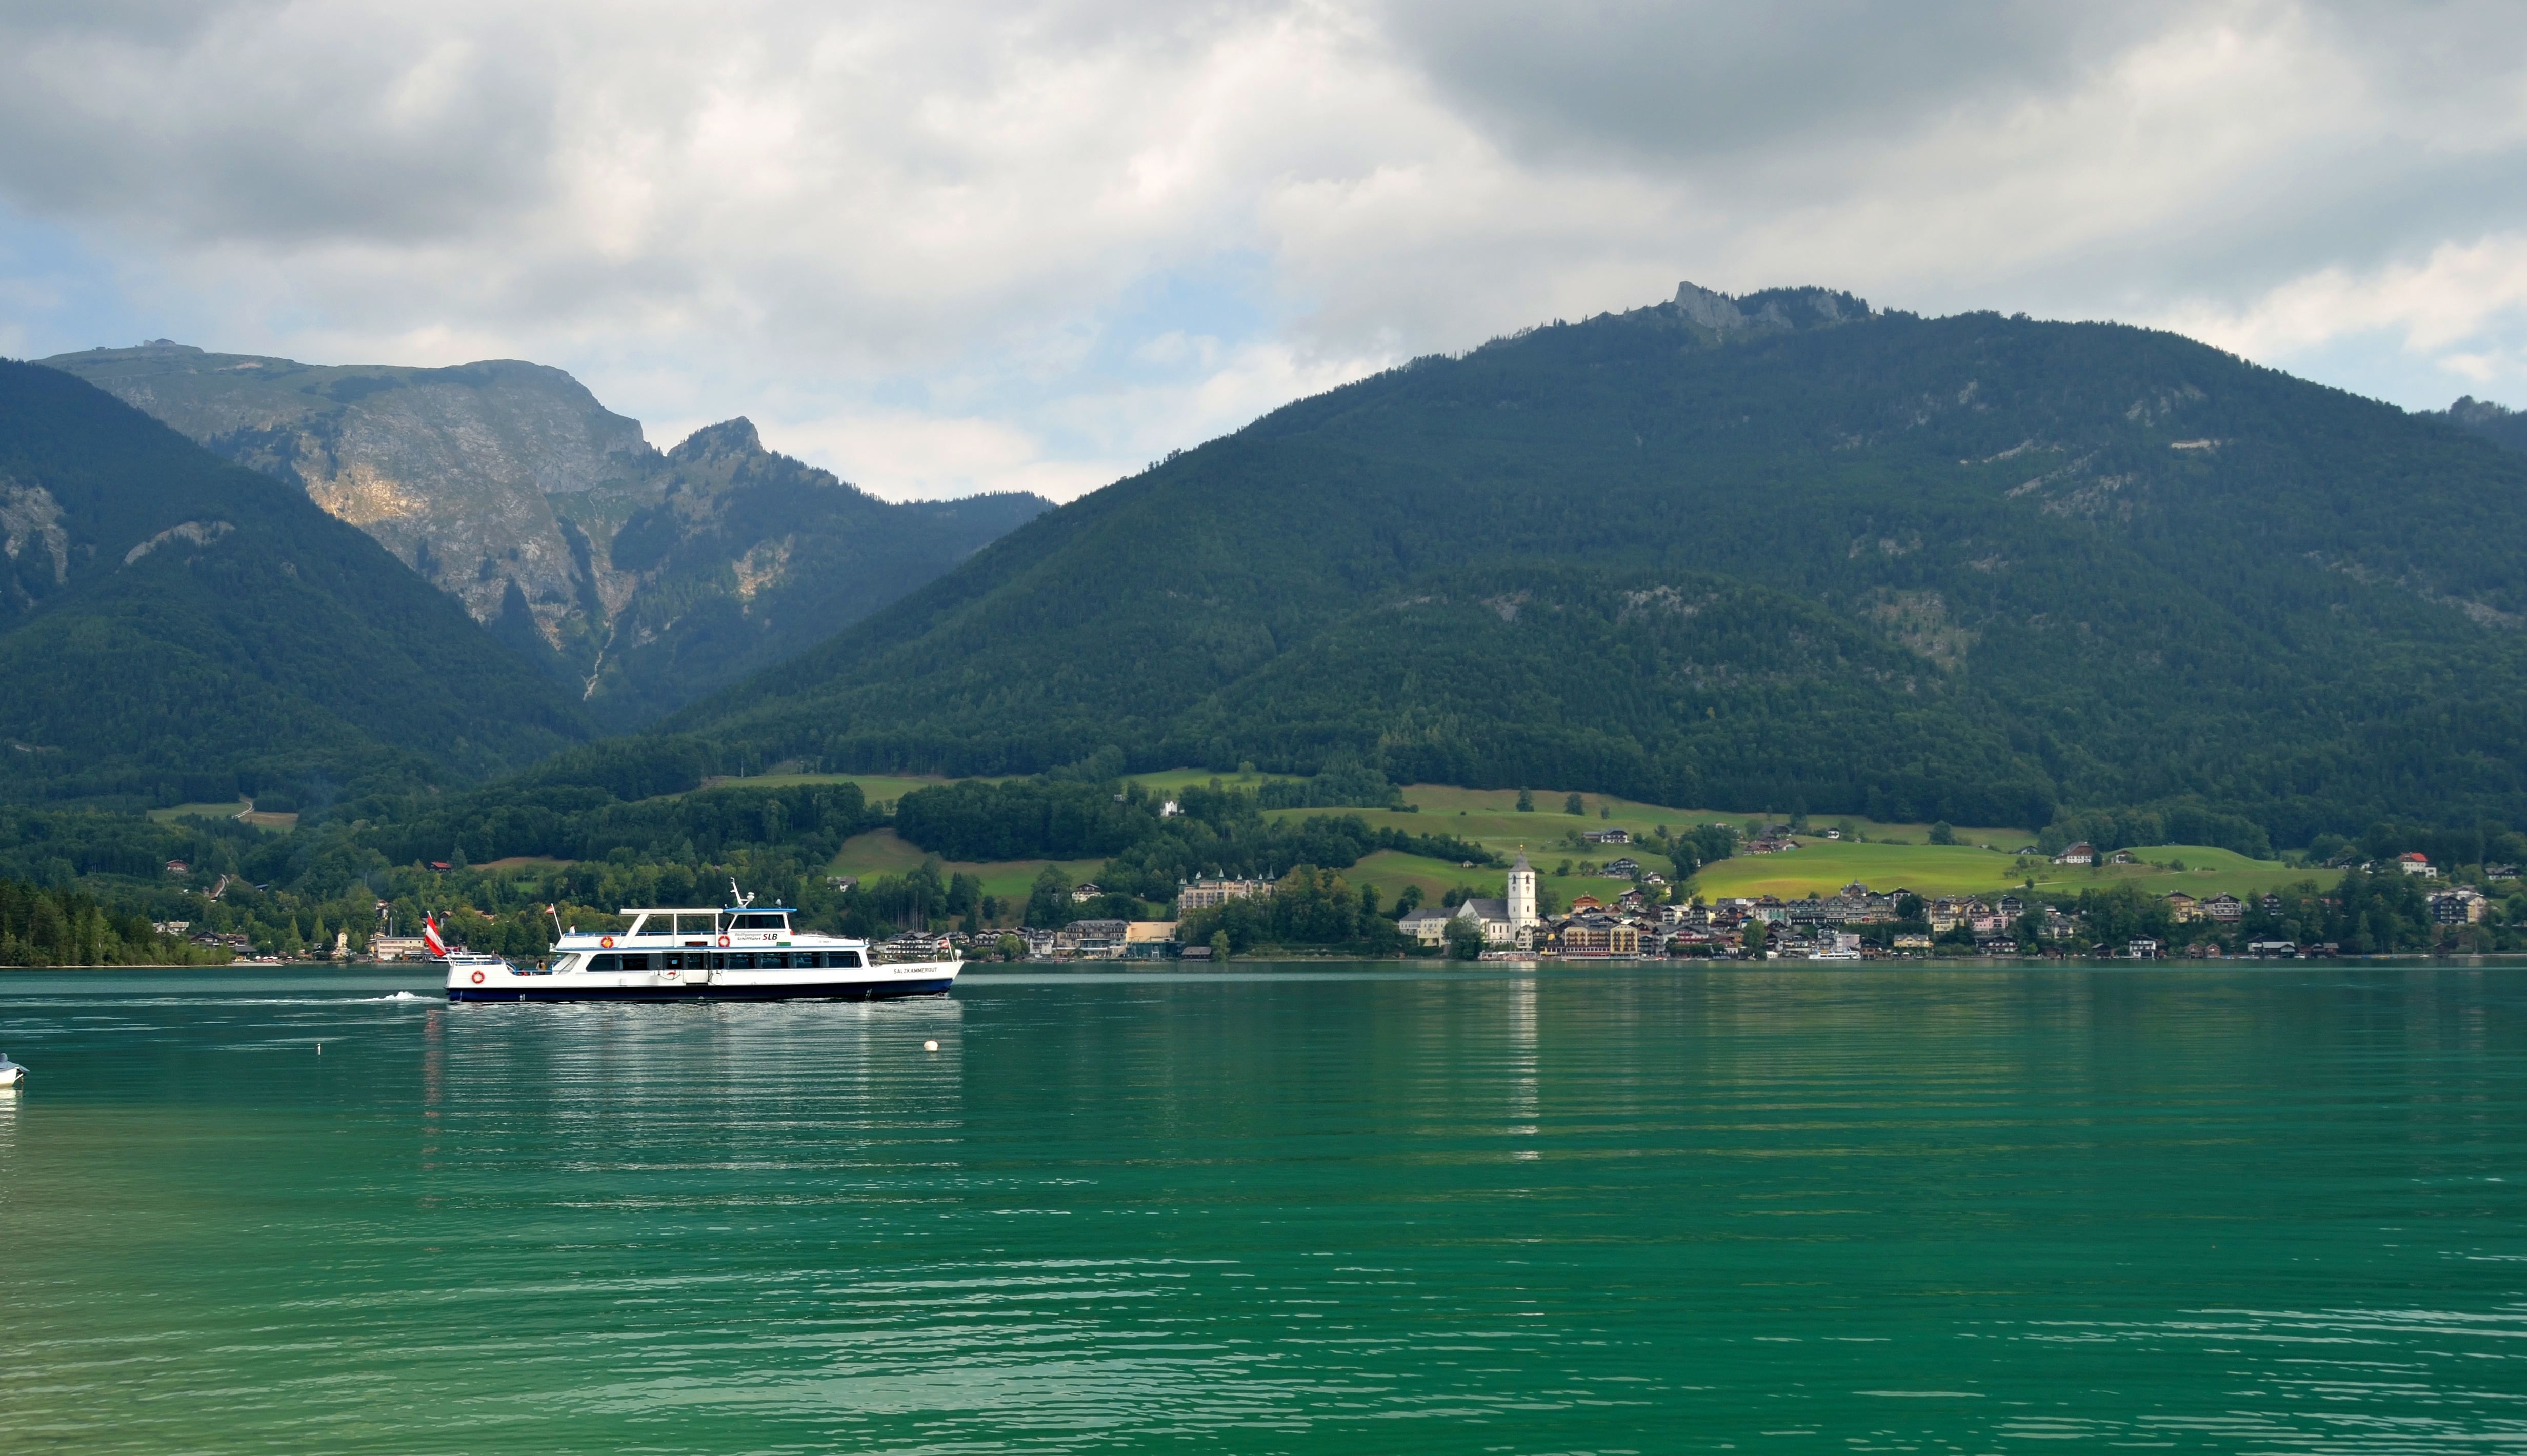 Ship_Salzkammergut_on_the_Wolfgangsee.jpg